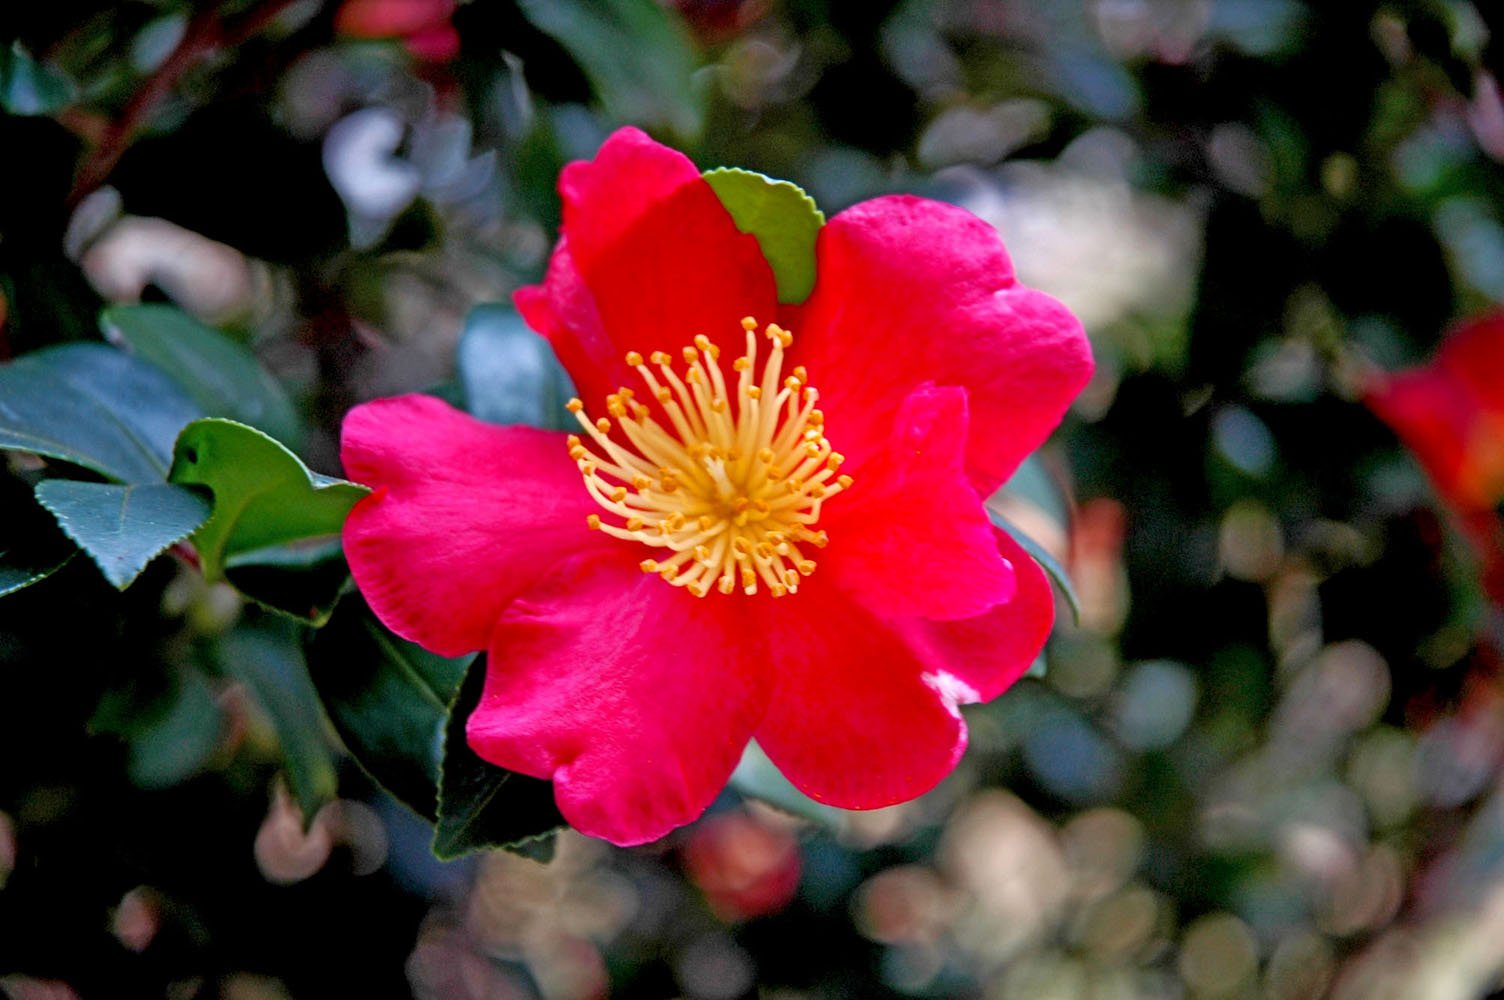 Yuletide camellia is a great holiday shrub mississippi state yuletide camellia is an award winning favorite bearing loads of red flowers coupled with bright mightylinksfo